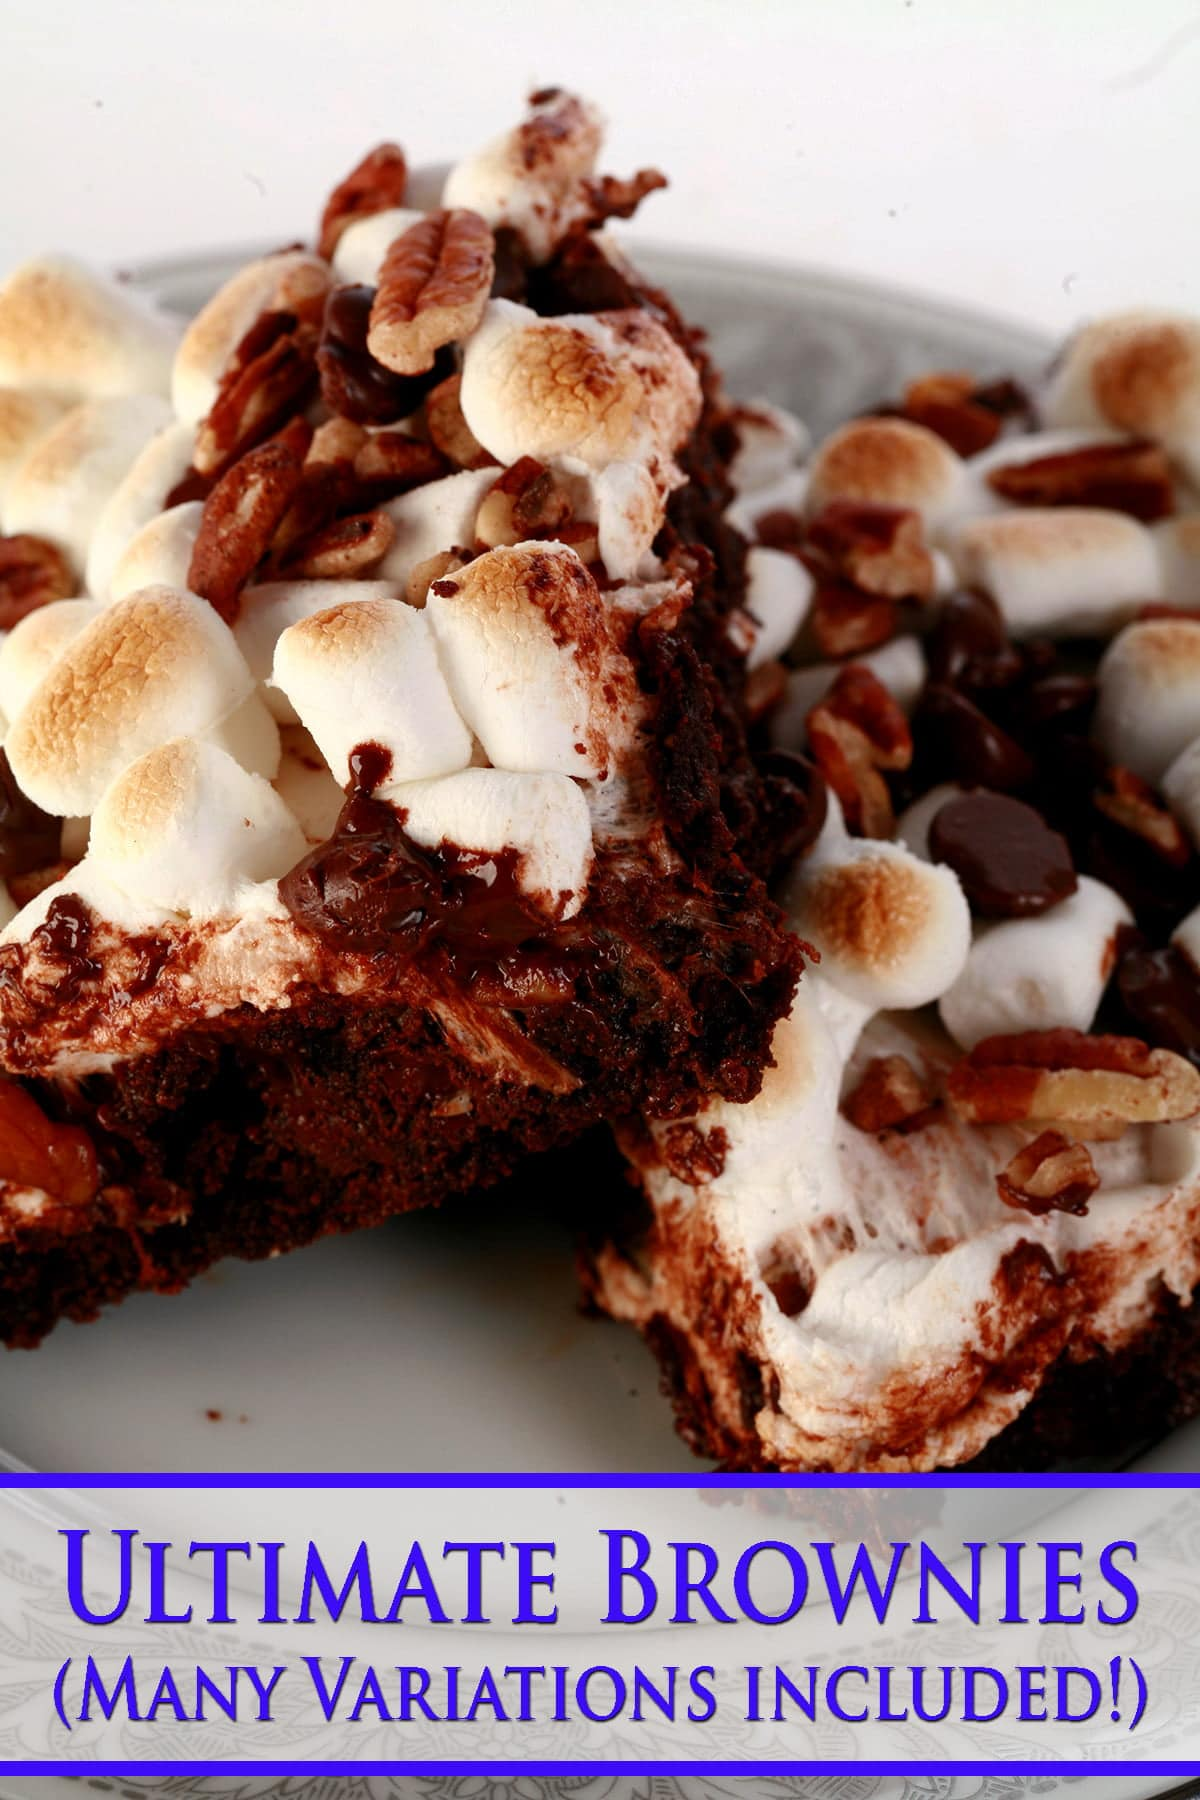 A close up view of two rocky road brownies - double chocolate walnut brownies with toasted mini marshmallows, chocolate chips, and chopped pecans on top.